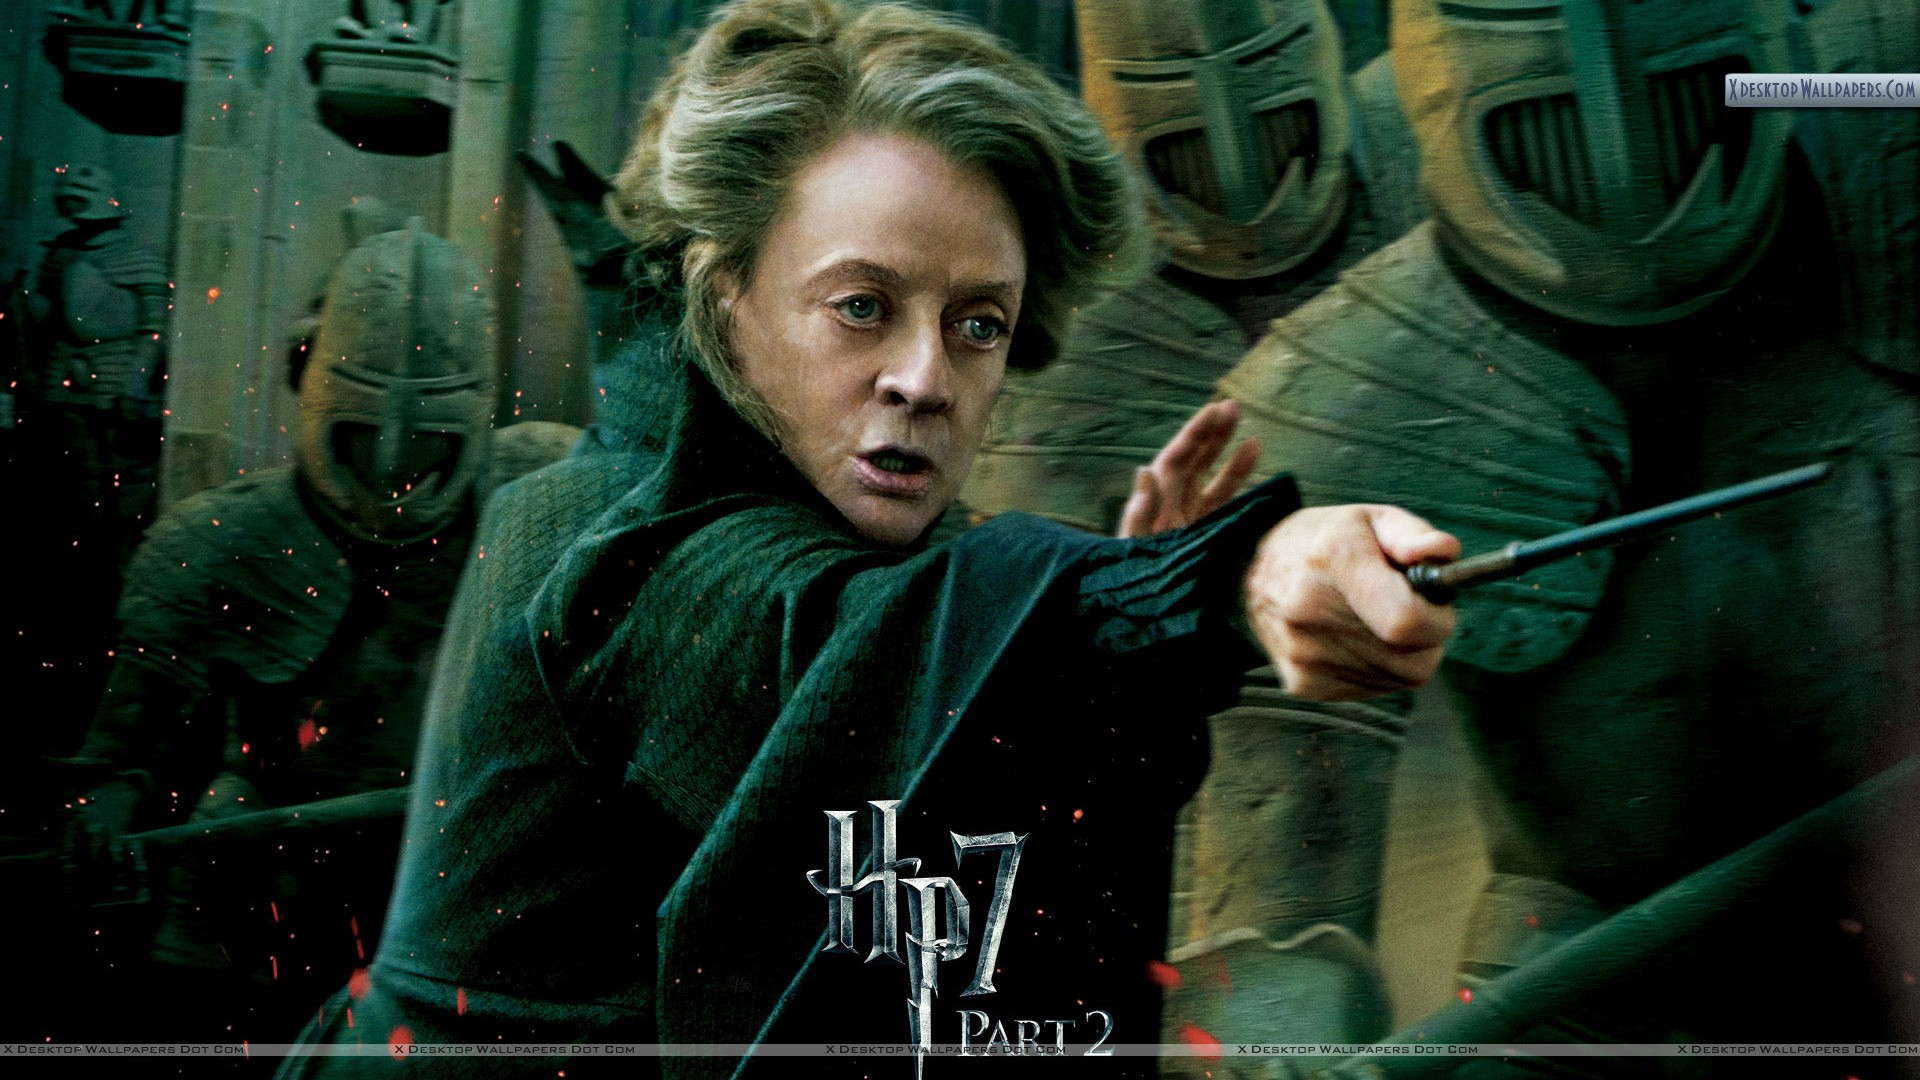 harry potter deathly hallows part 2 hd movie download